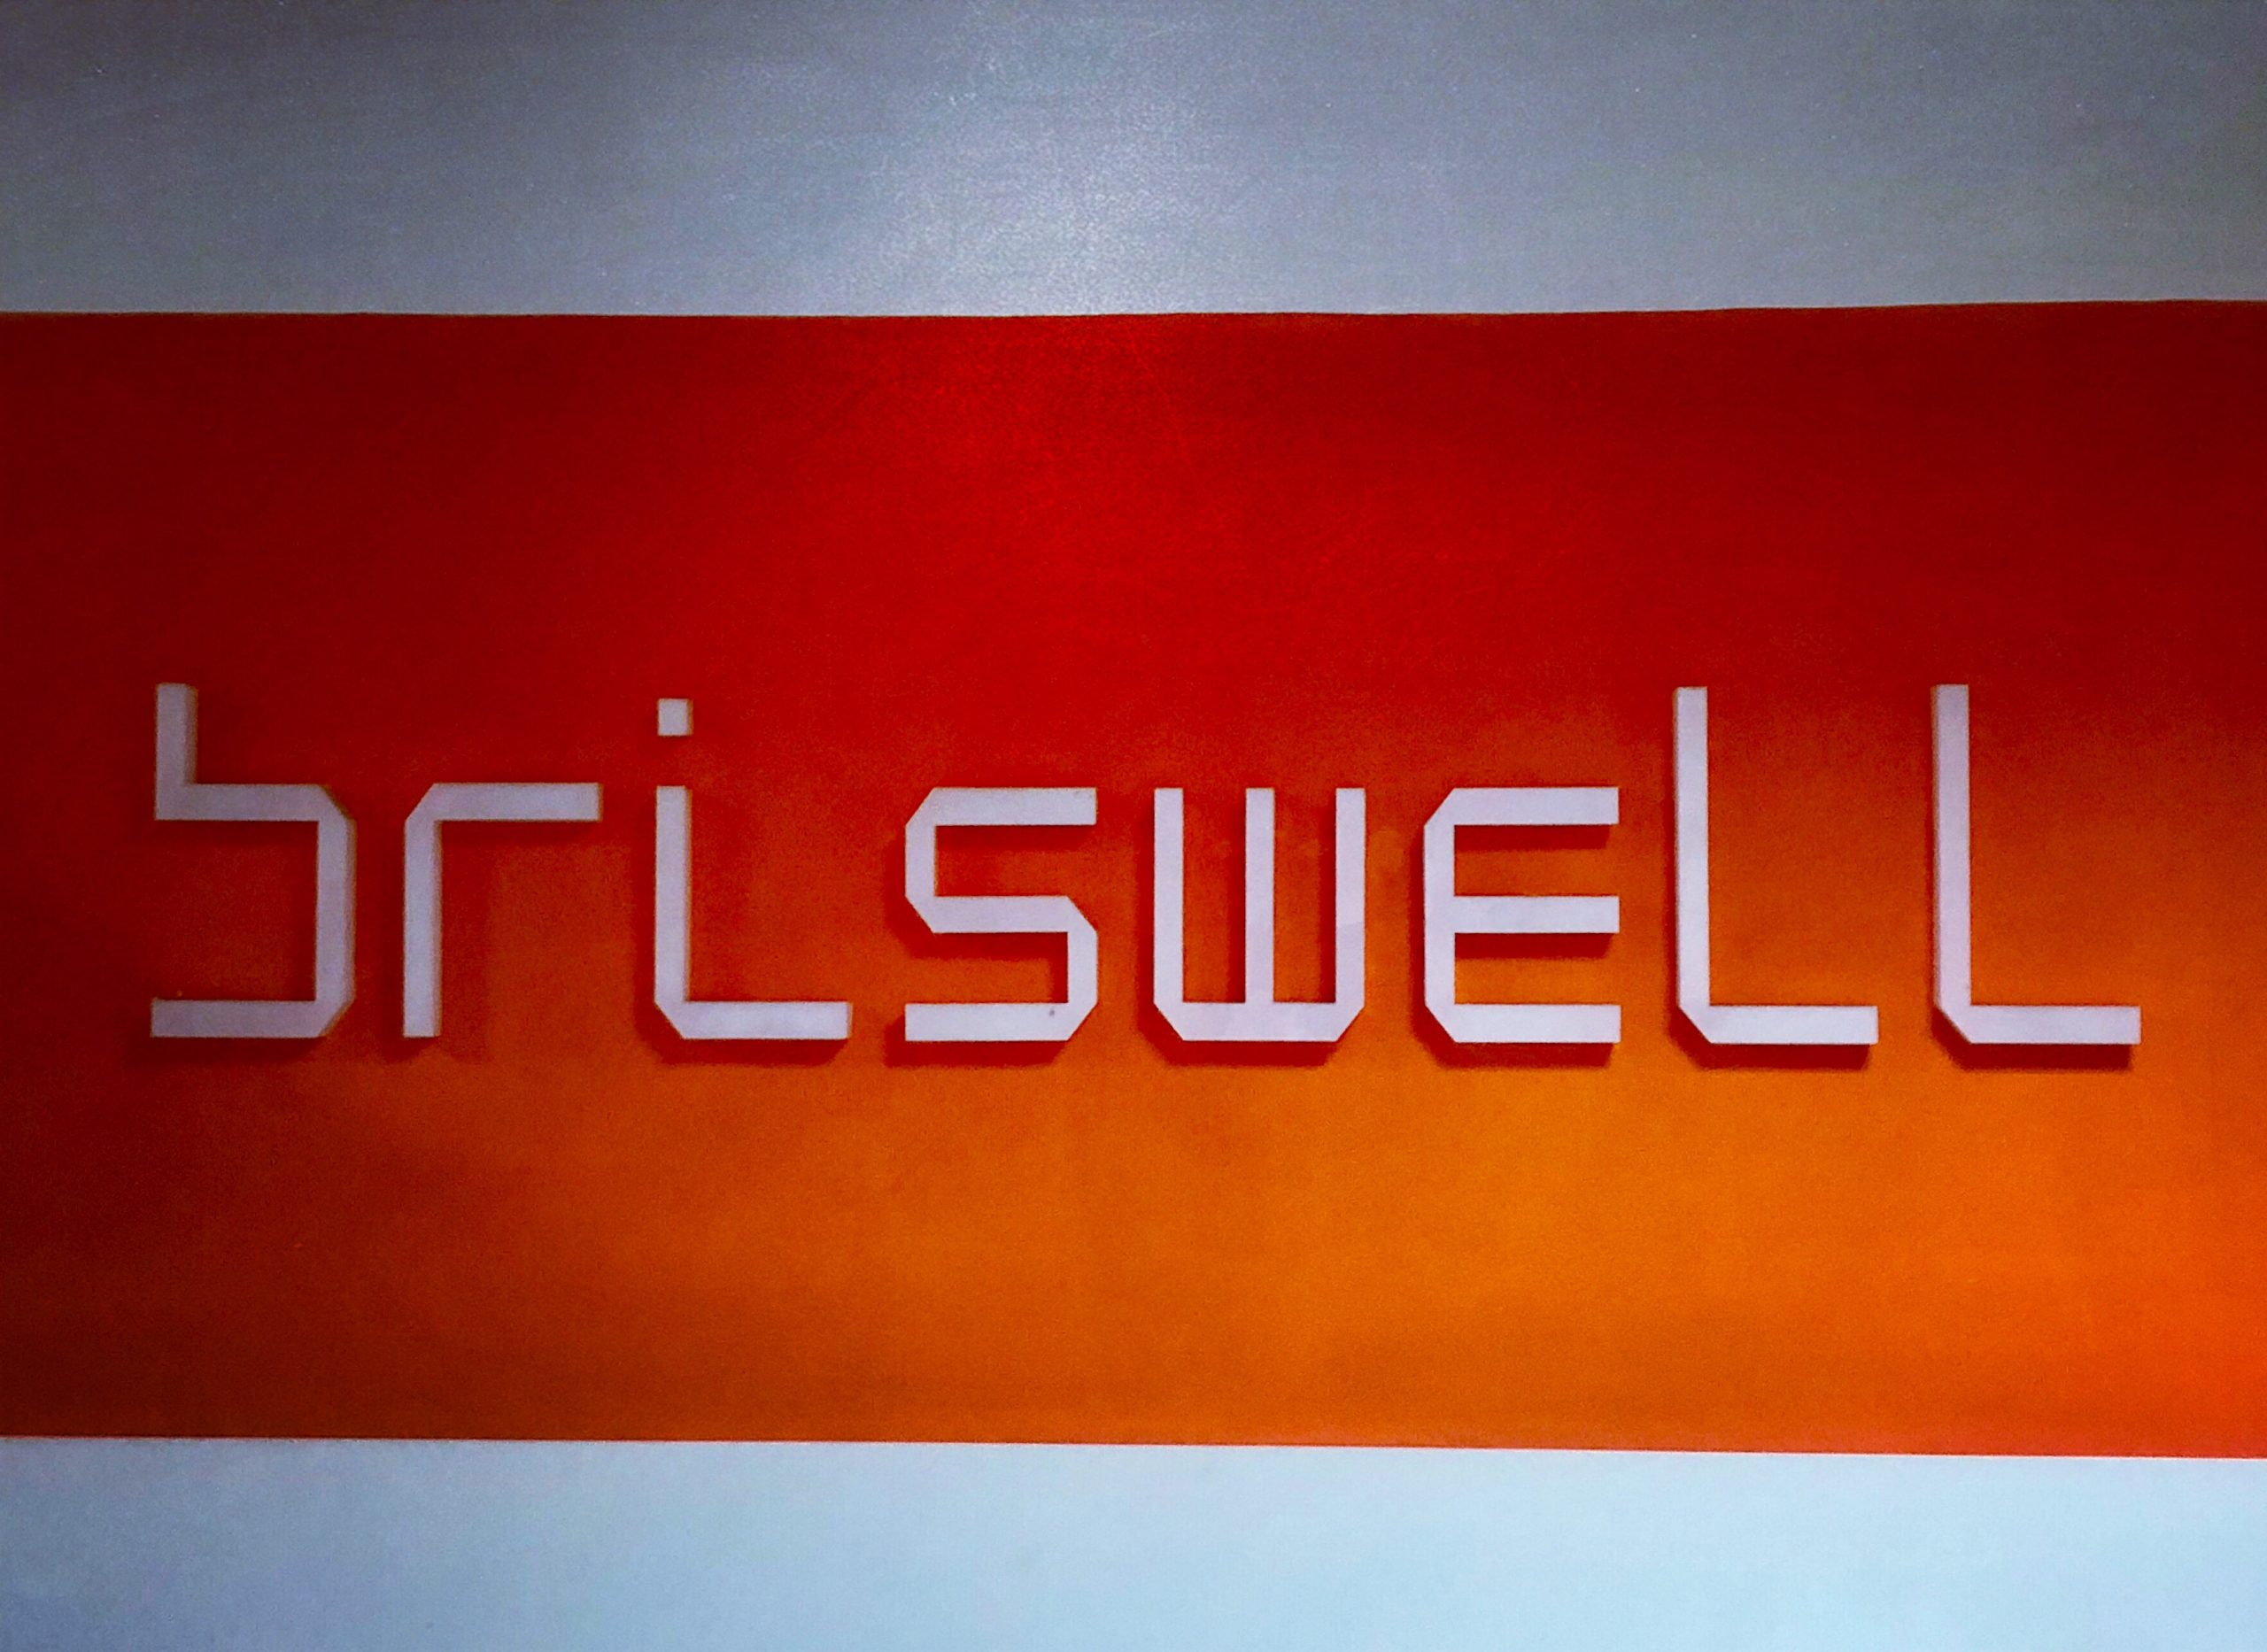 Announcement of change of Briswell VietNam address